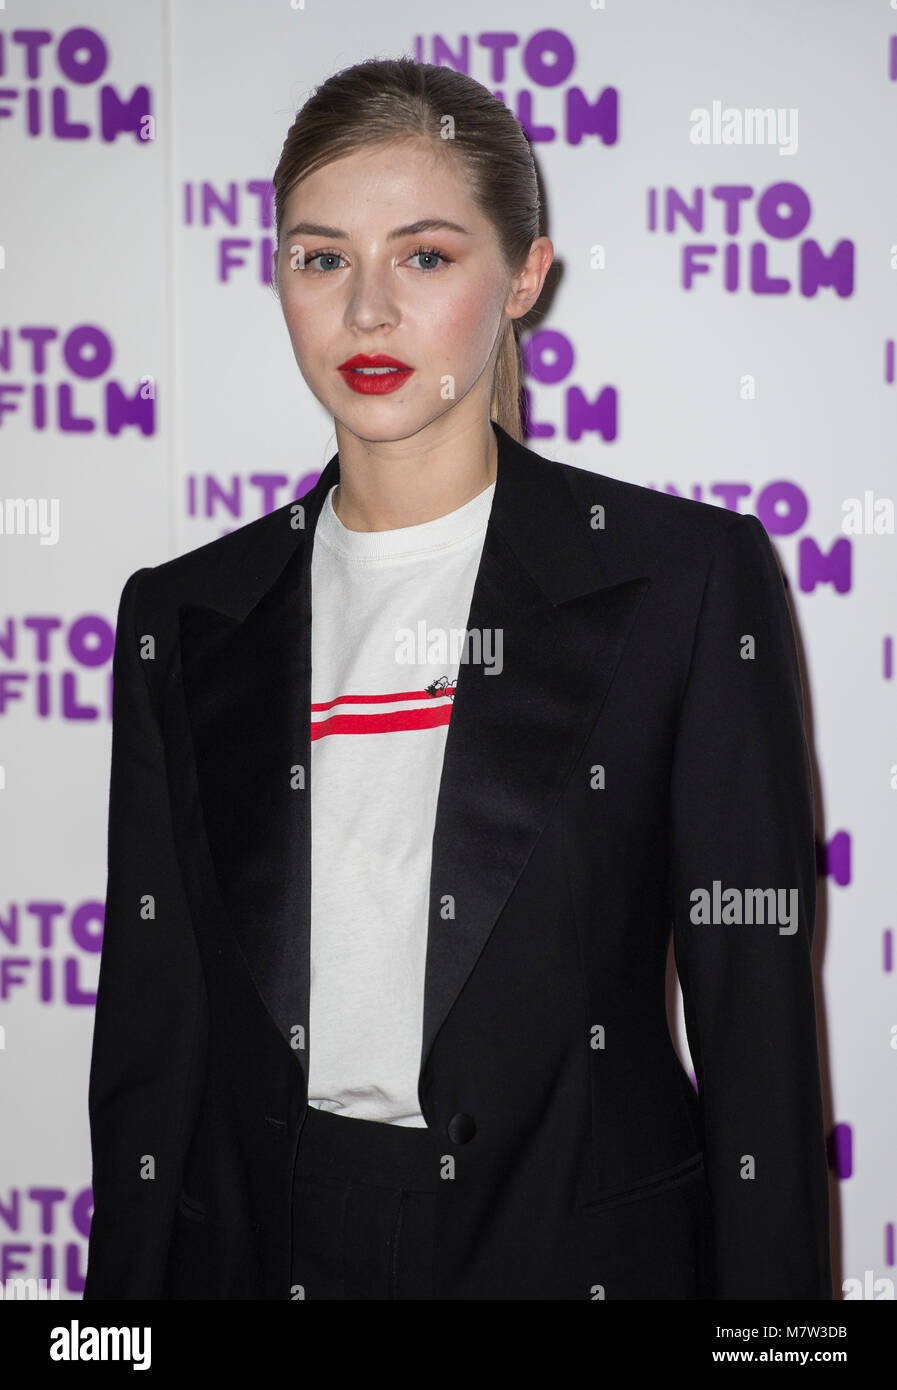 London, UK. 13th March, 2018.  attends the Into Film Awards at BFI Southbank on March 13, 2018 in London, England. Stock Photo